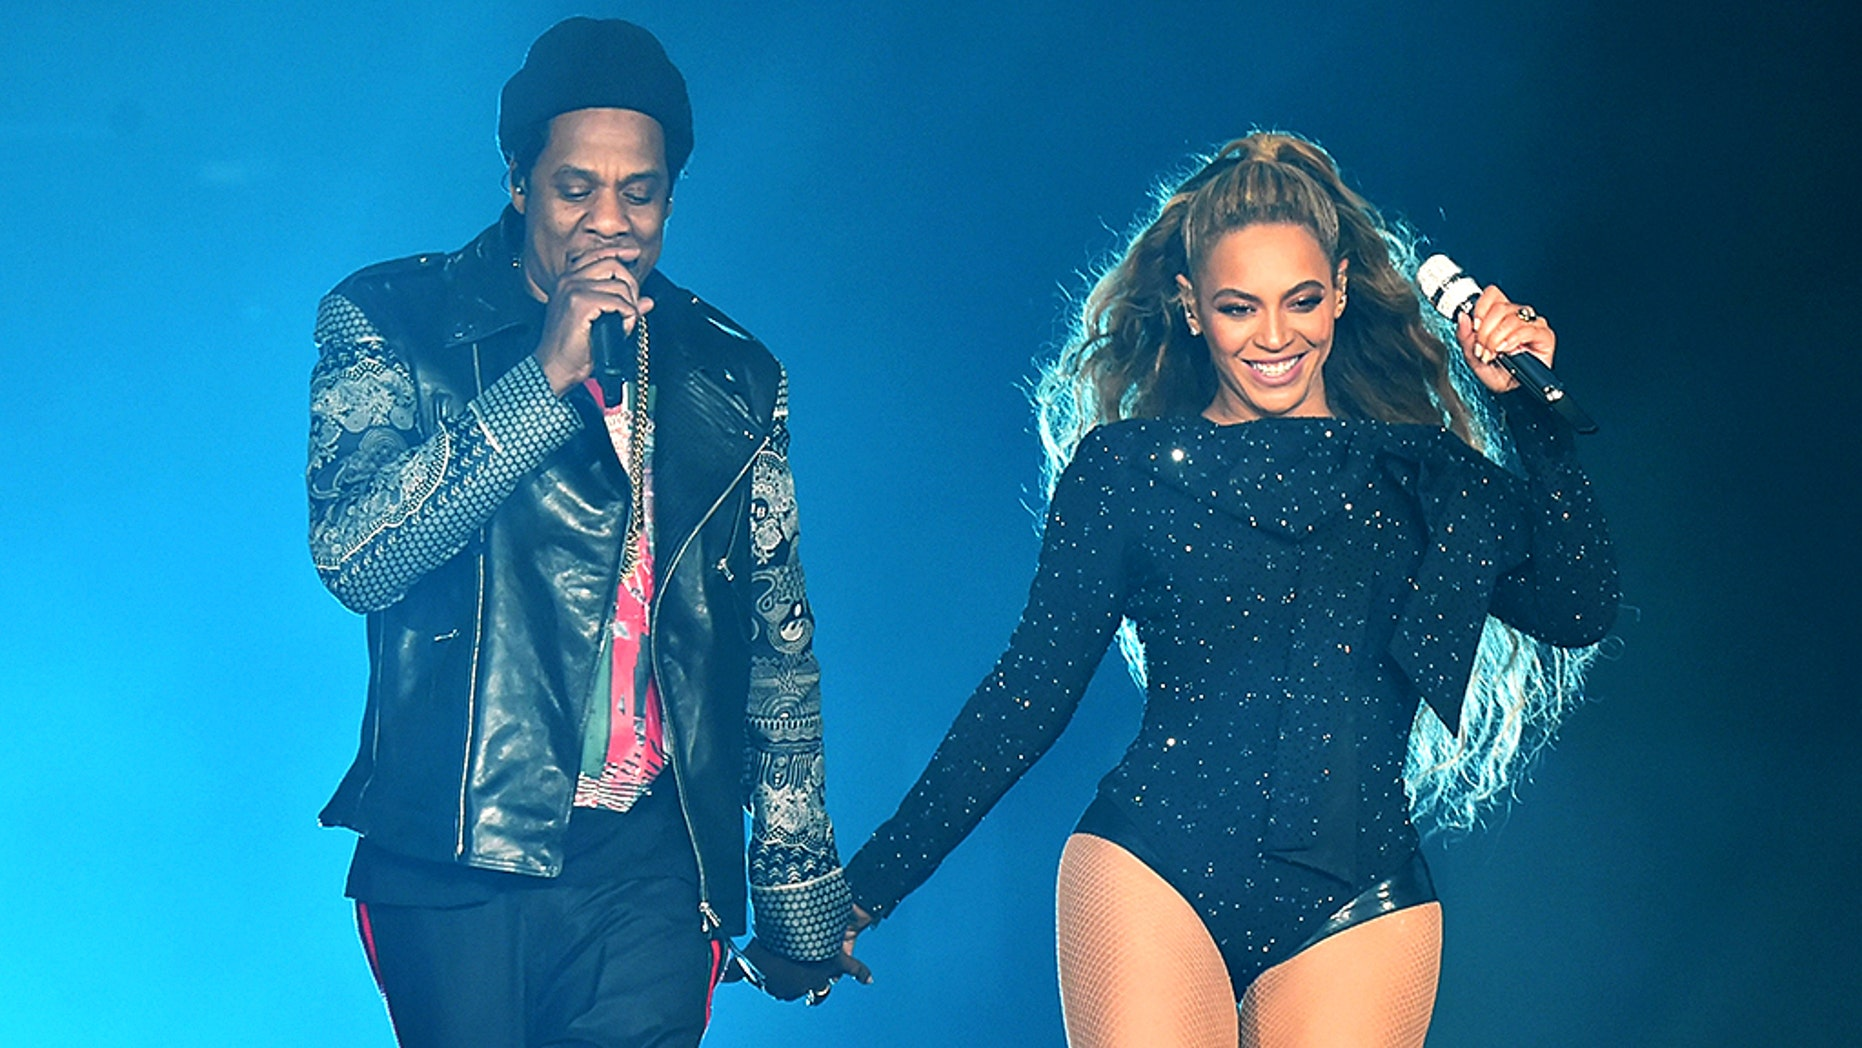 In addition to Beyoncé, other musical acts included her husband Jay Z (pictured together), Ed Sheeran, Pharrell Williams and Chris Martin.